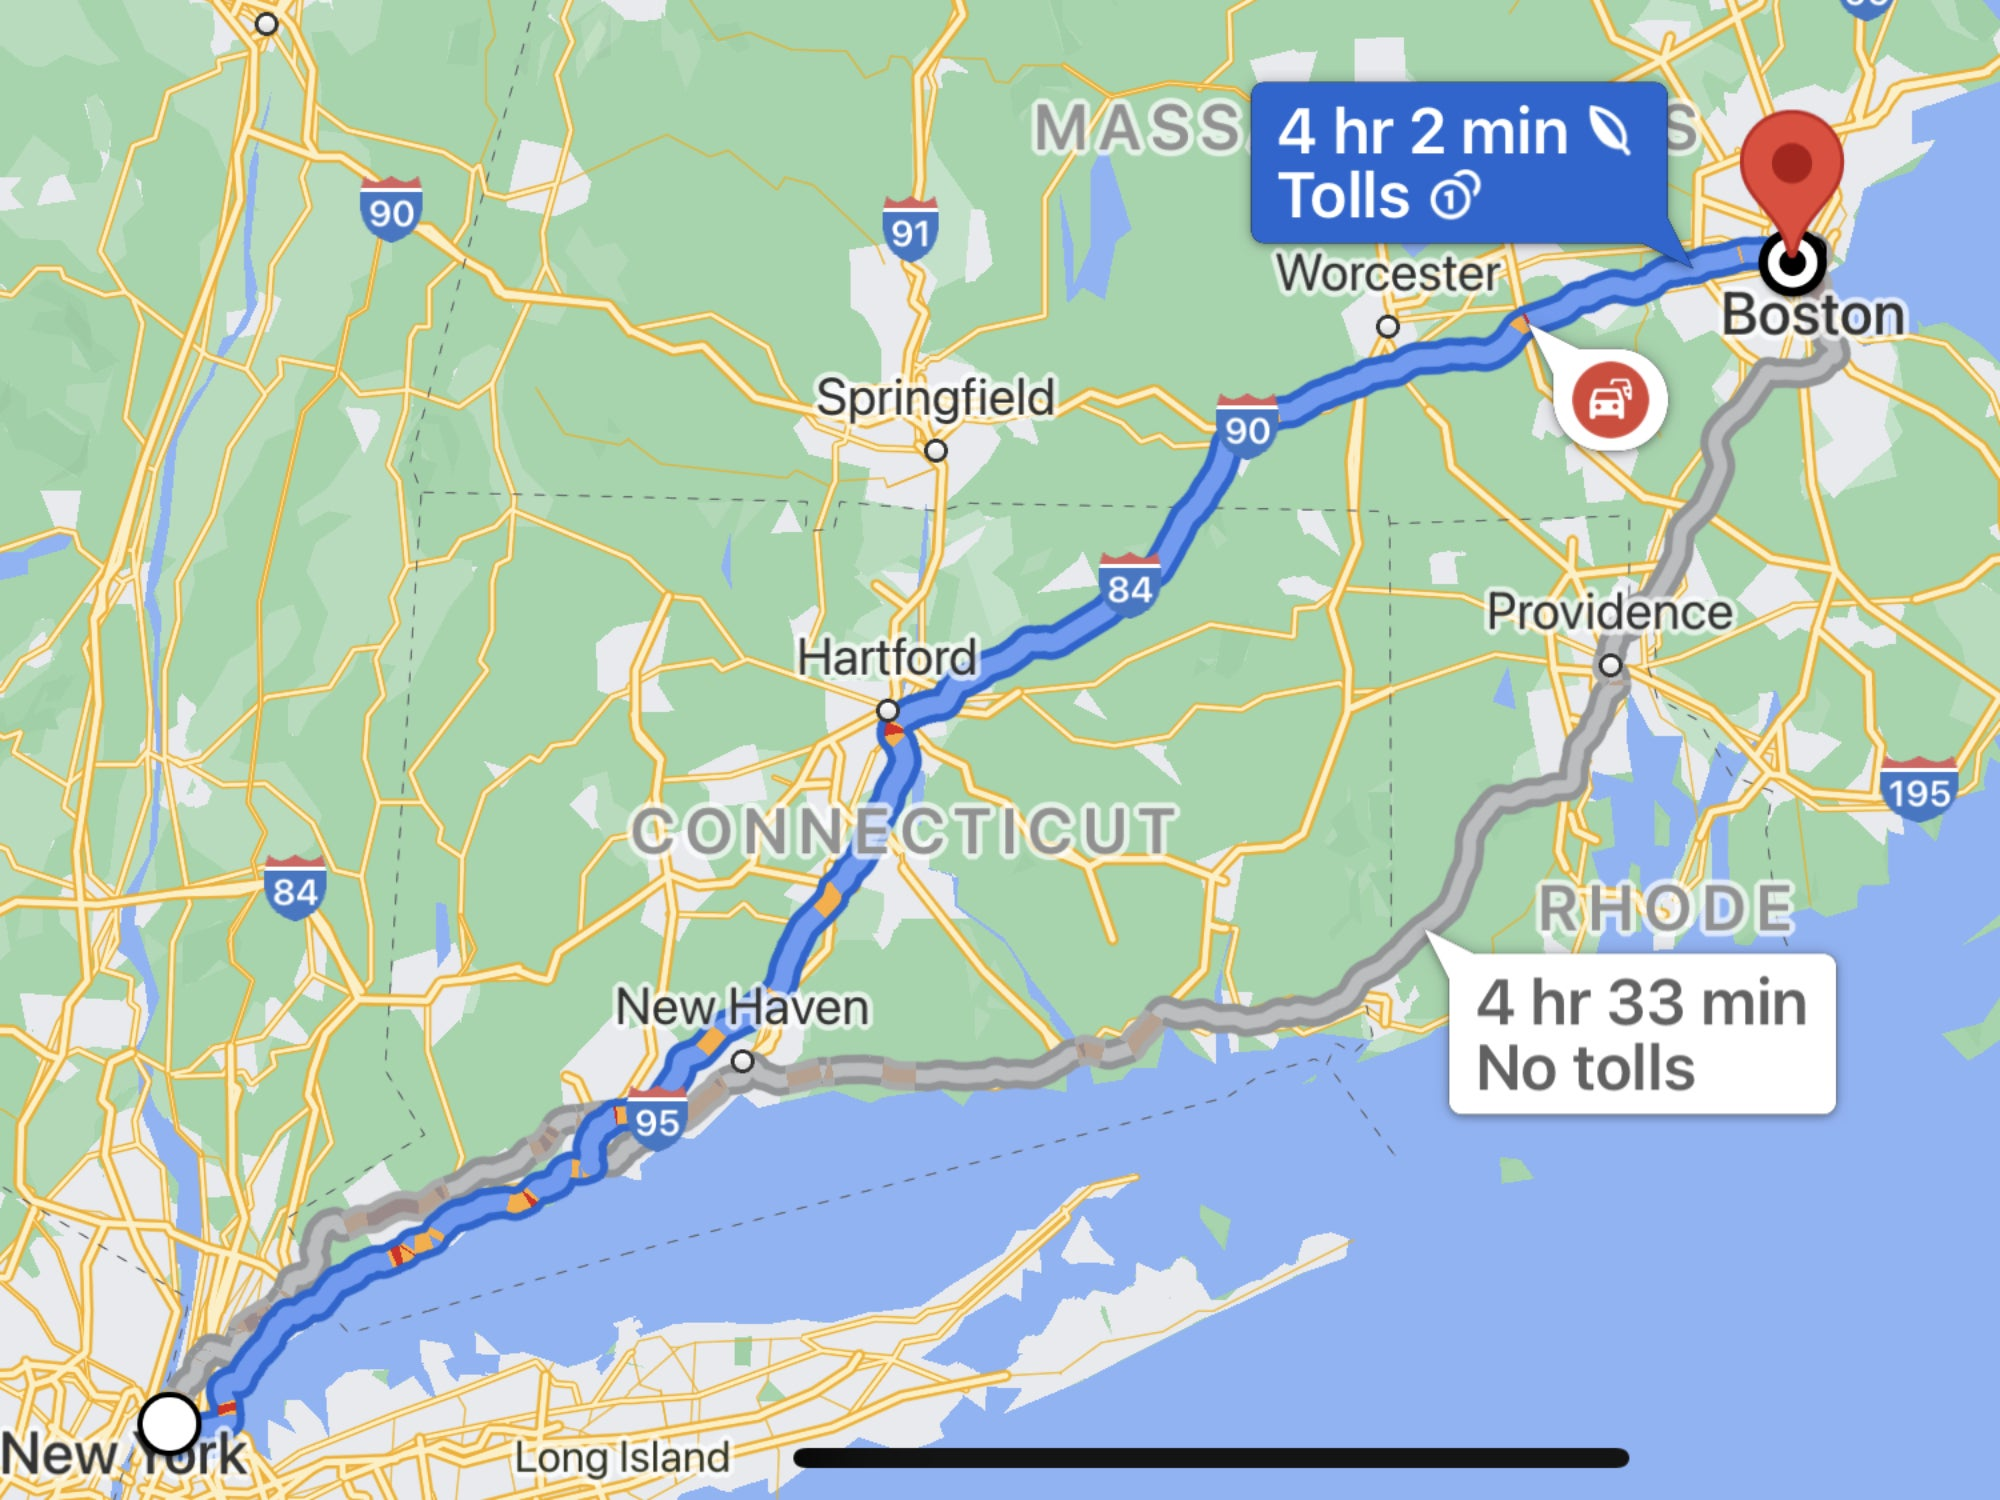 Google Maps showing an eco-friendly route from New York City to Boston.